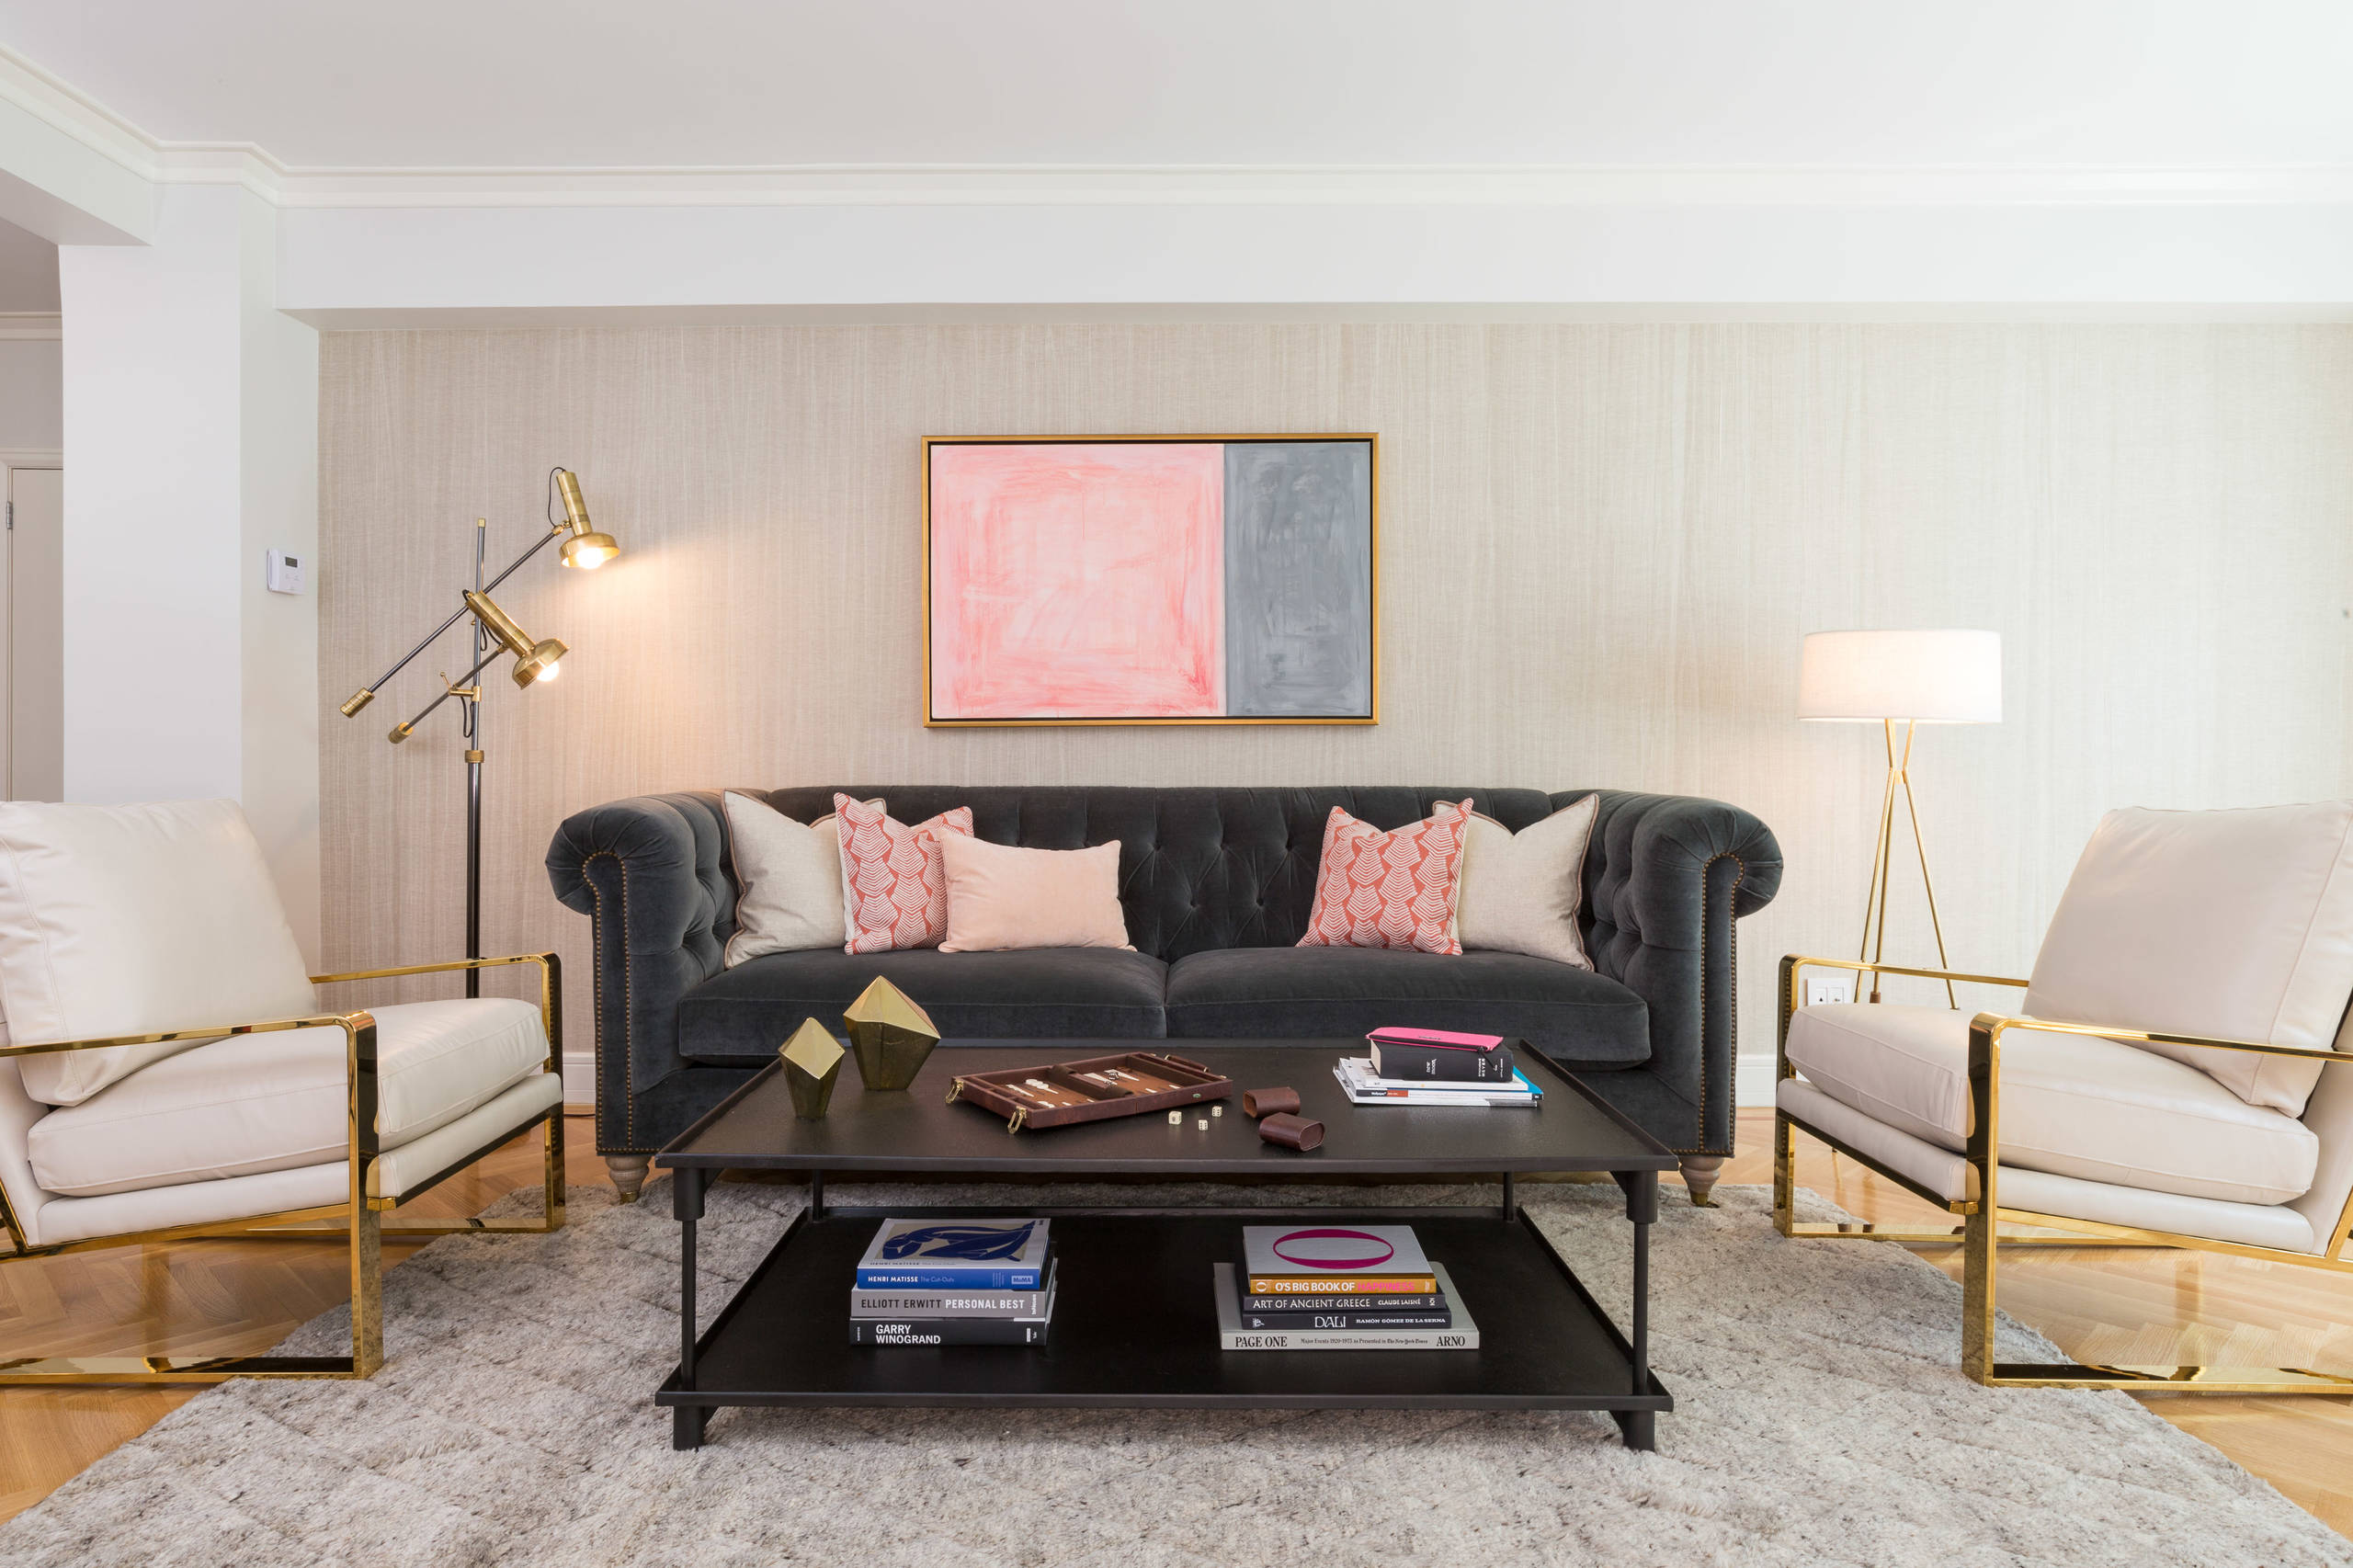 Which Type Of Velvet Sofa Should You Buy For Your Home? - shoproomideas